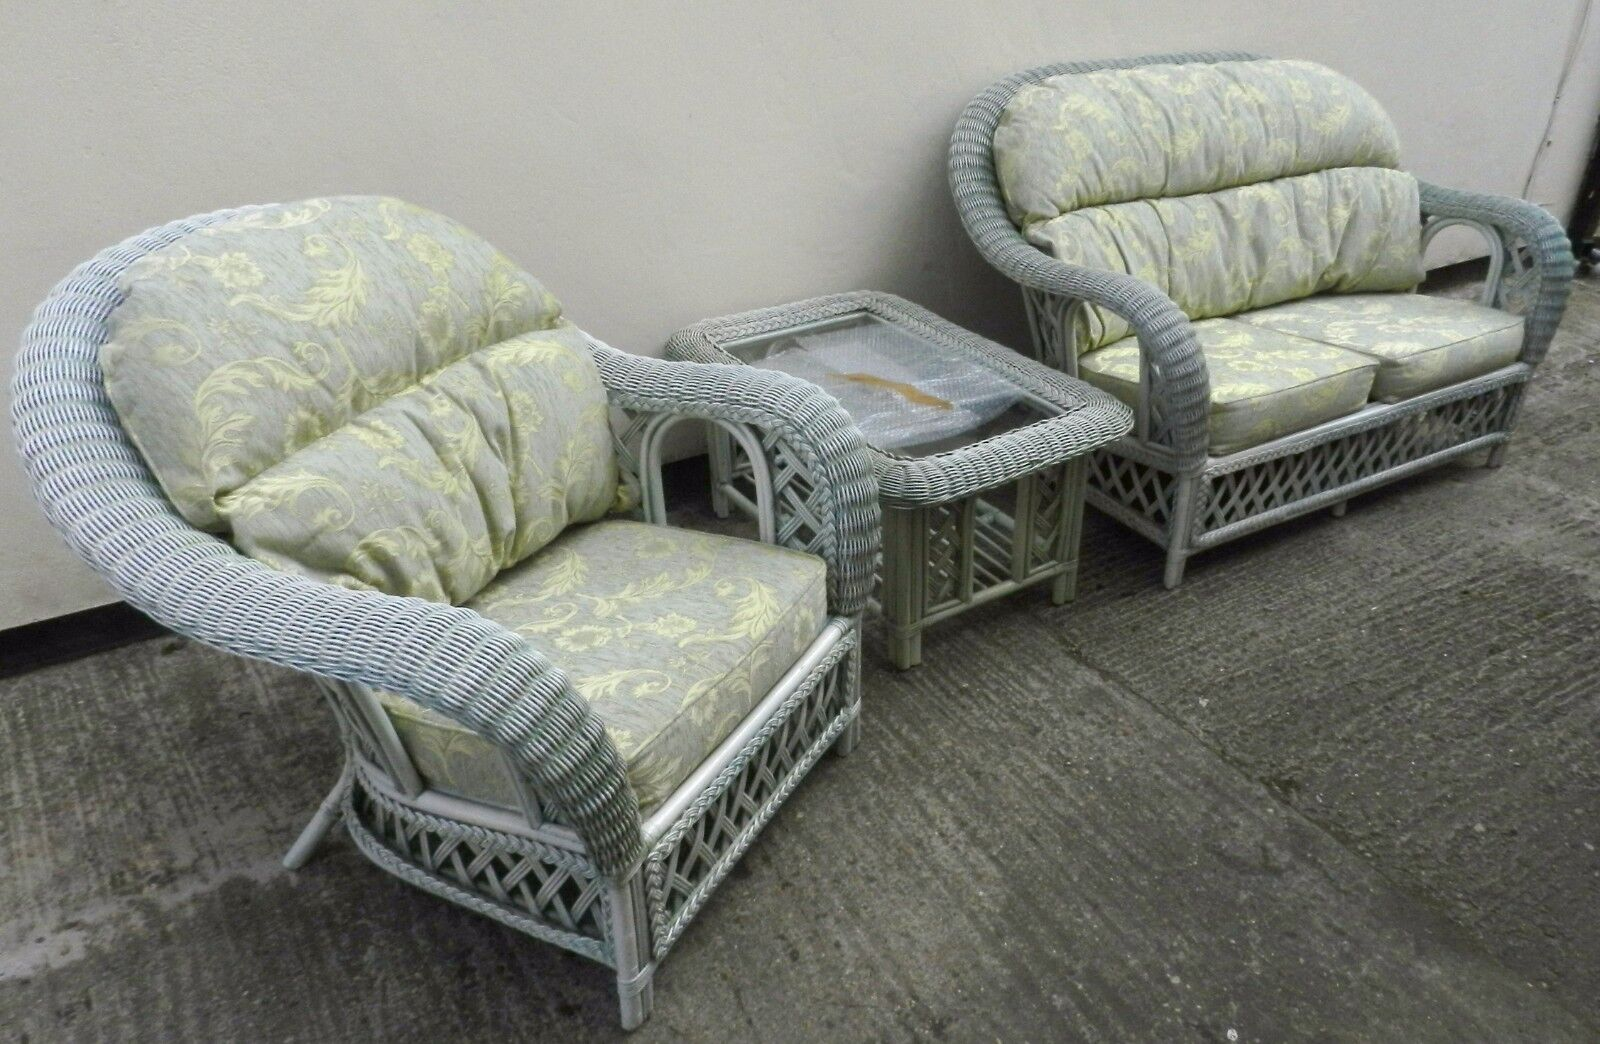 Conservatory wicker 3 piece furniture suite sofa chair for Furniture 3 piece suites